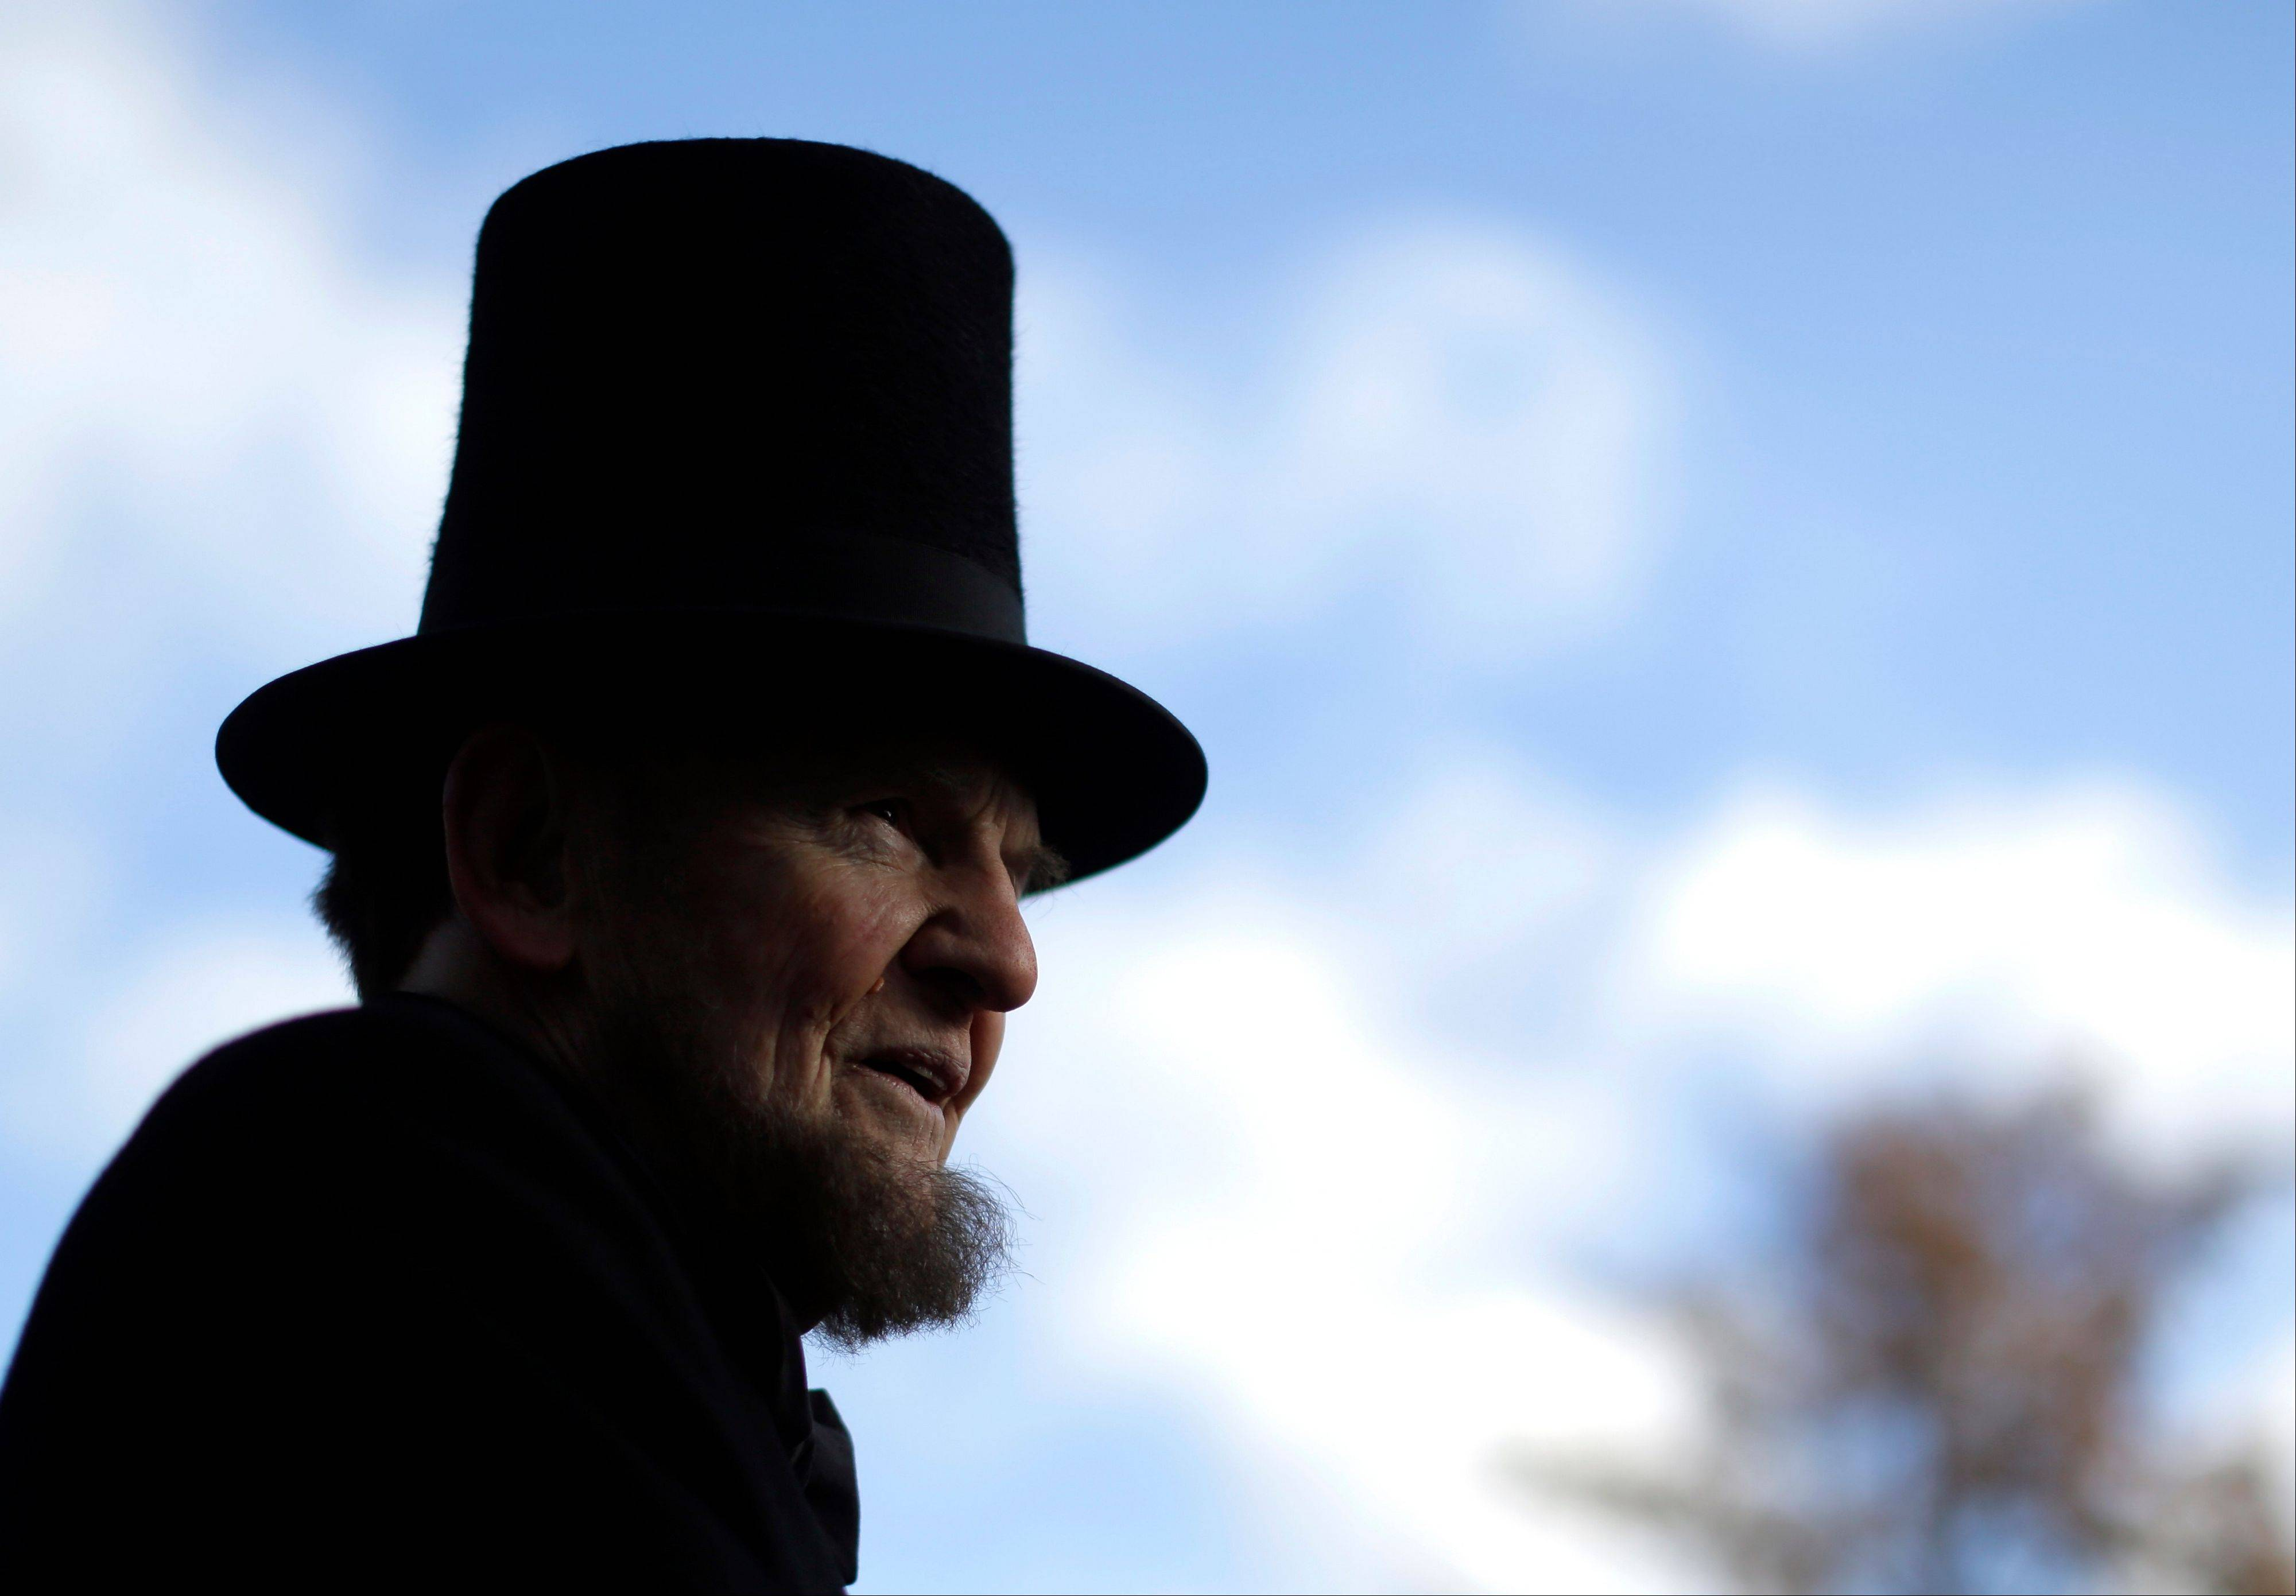 James Getty, portraying President Abraham Lincoln, pauses before a ceremony commemorating the 150th anniversary of the dedication of the Soldiers' National Cemetery and President Abraham Lincoln's Gettysburg Address, Tuesday Nov. 19, 2013, in Gettysburg, Pa.